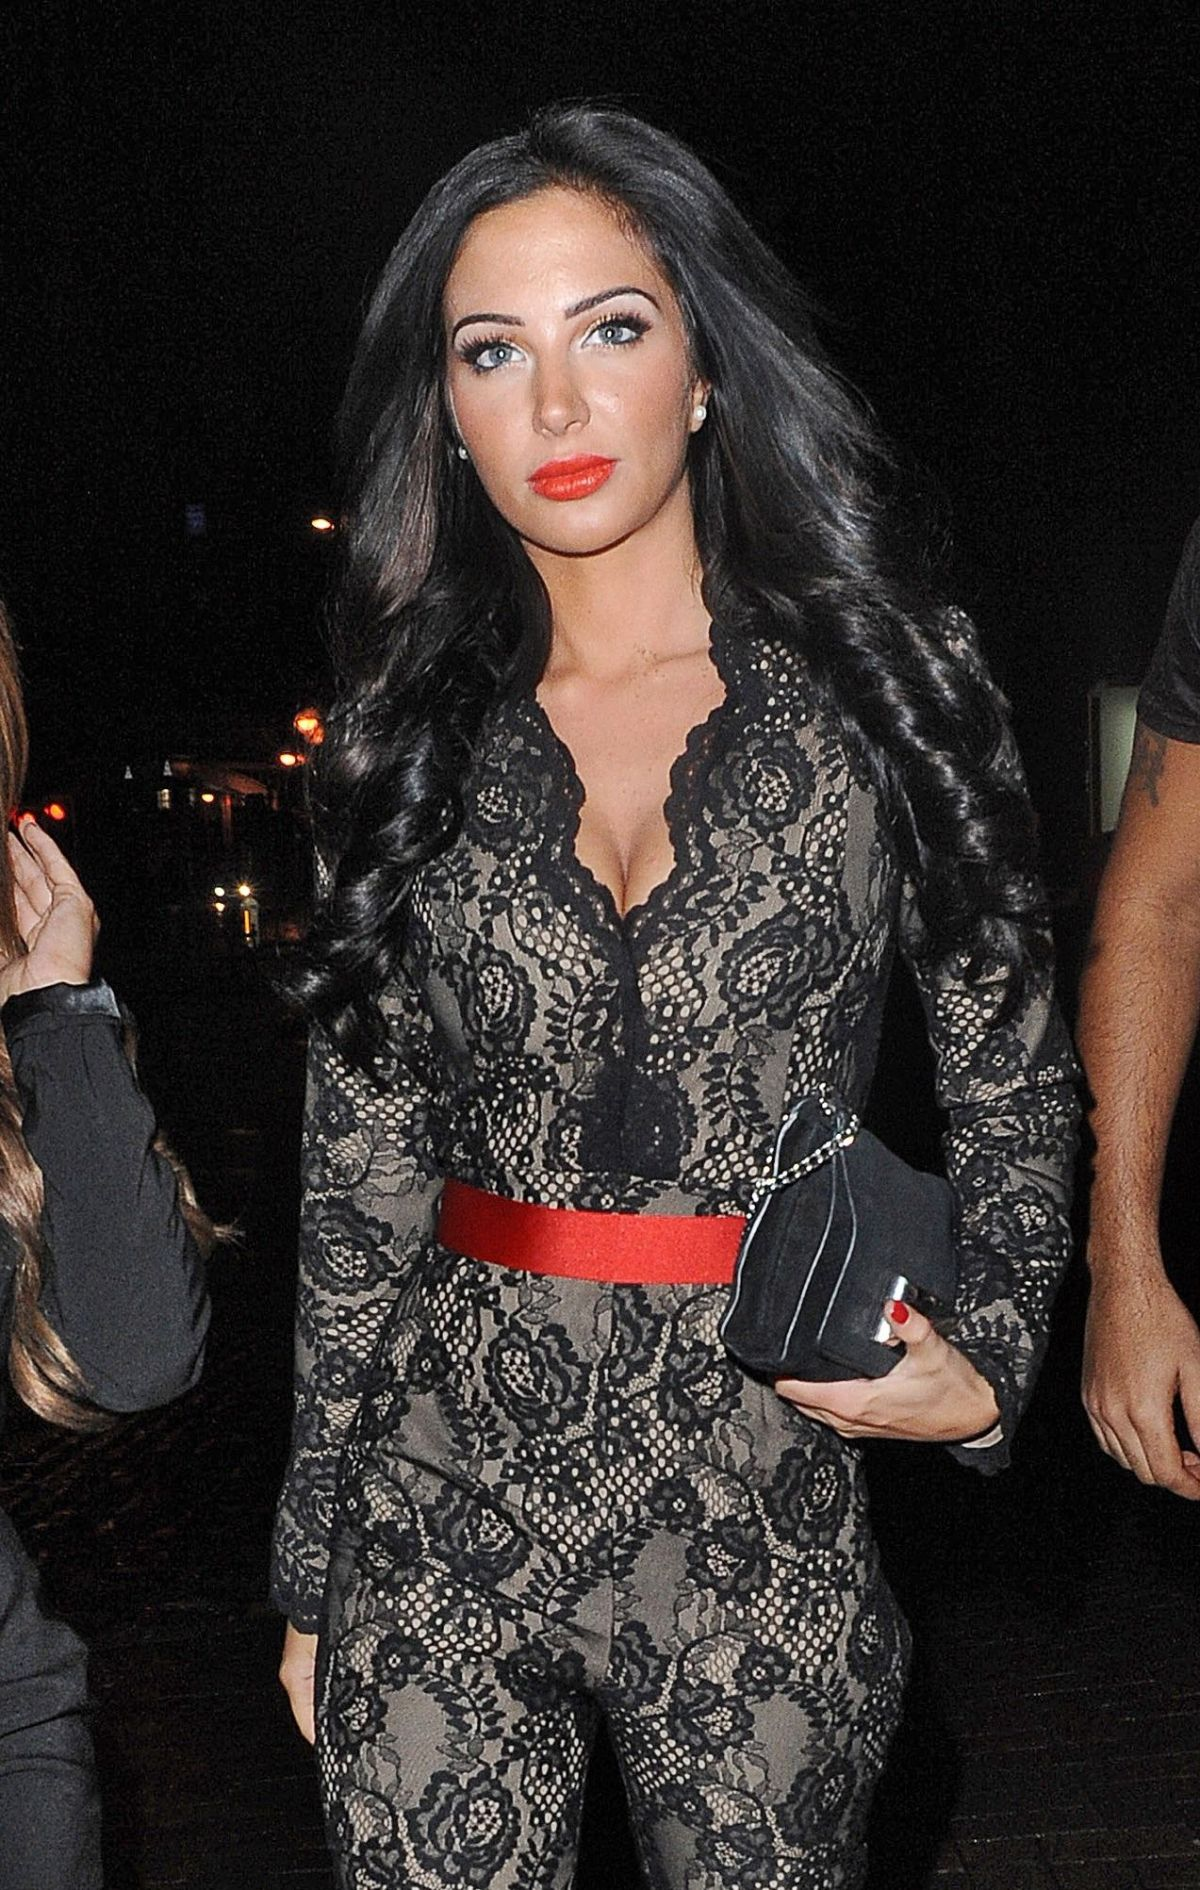 TULISA CONTOSTAVLOS Night Out in Manchester